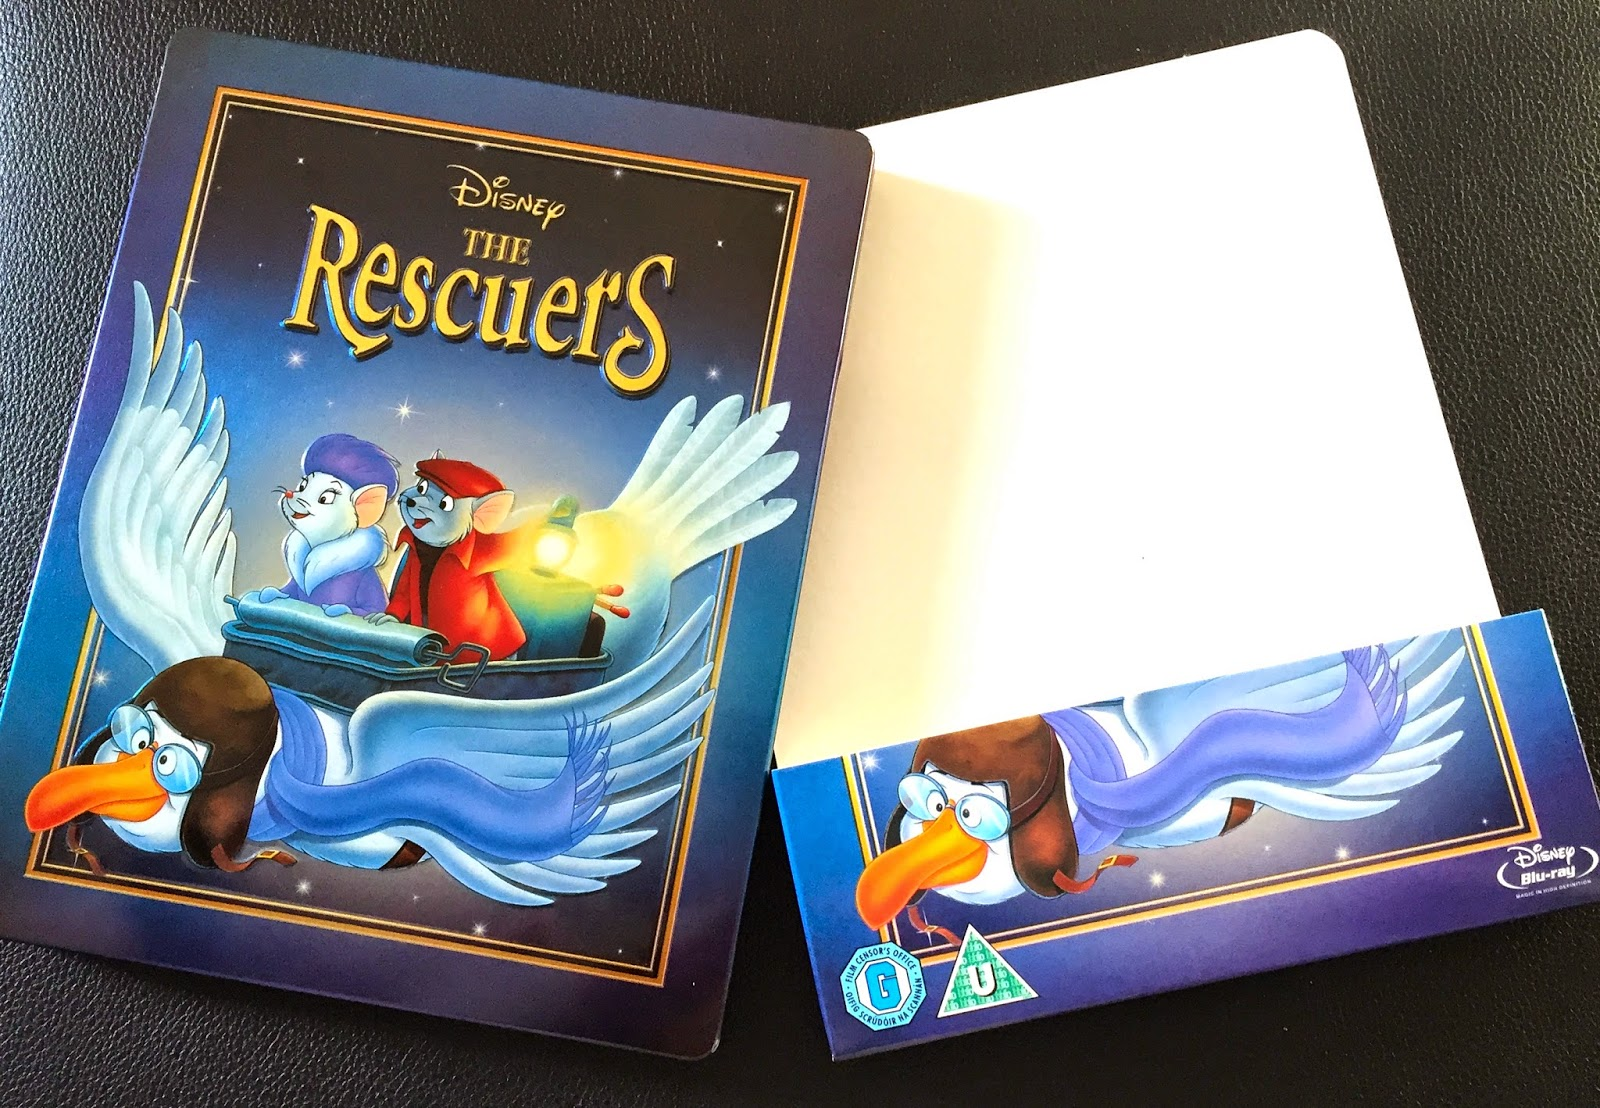 The Rescuers Blu-ray